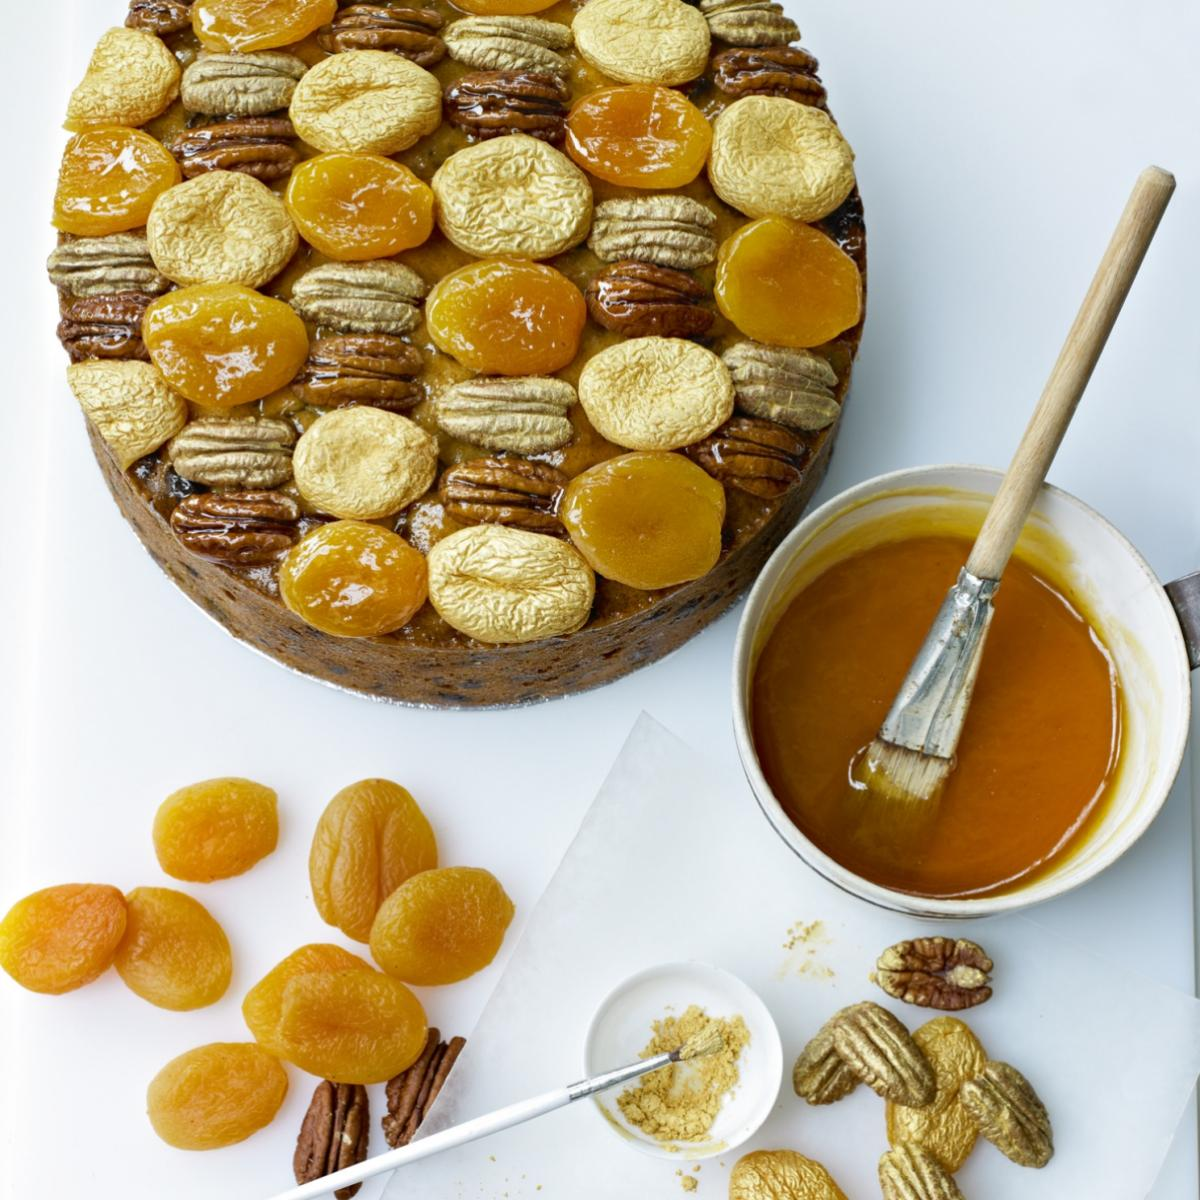 A picture of Delia's Golden Apricot and Pecan Topping recipe